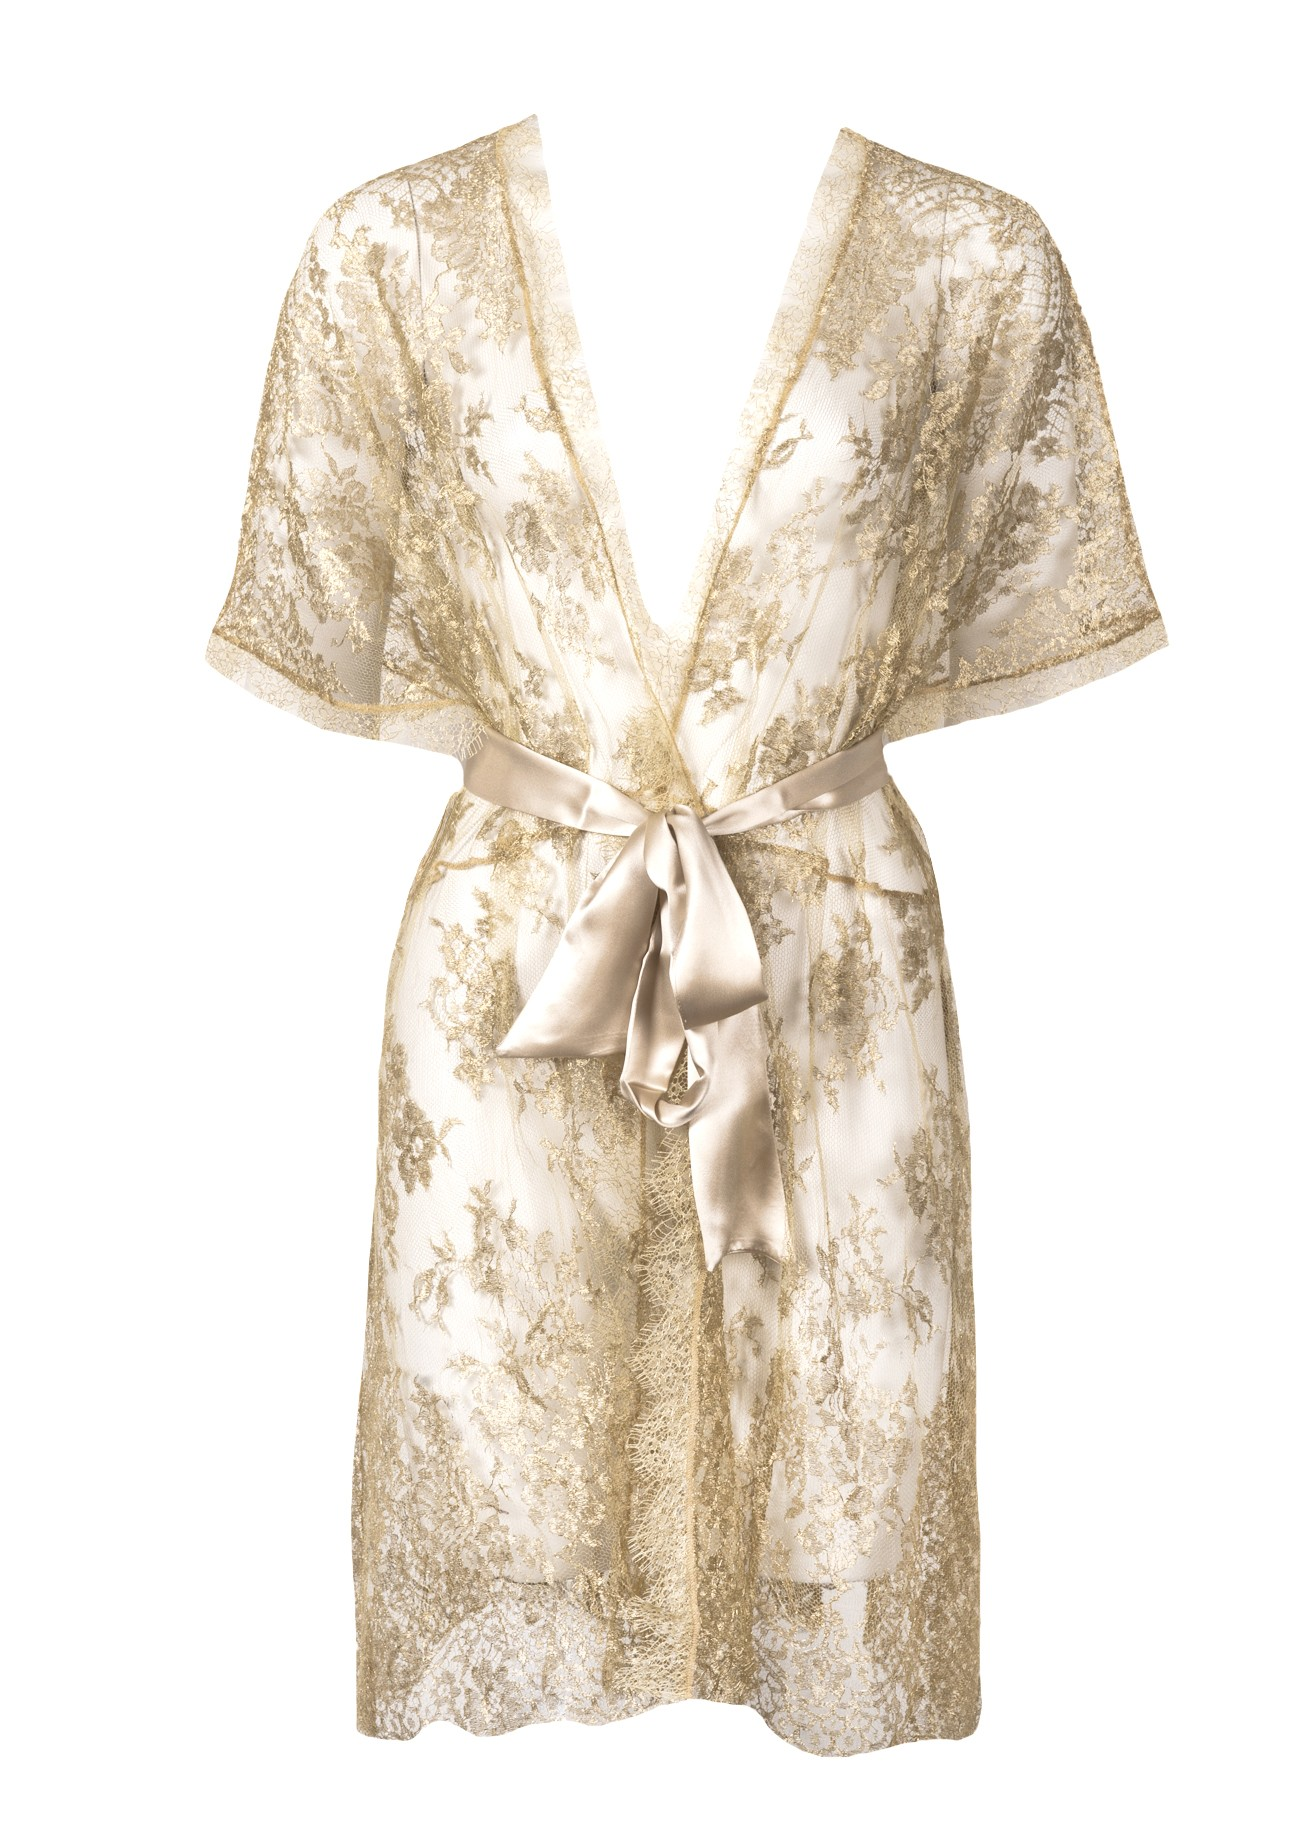 88be12573d Trouva: Gilda & Pearl Harlow Gold Lace Kimono Dressing Gown